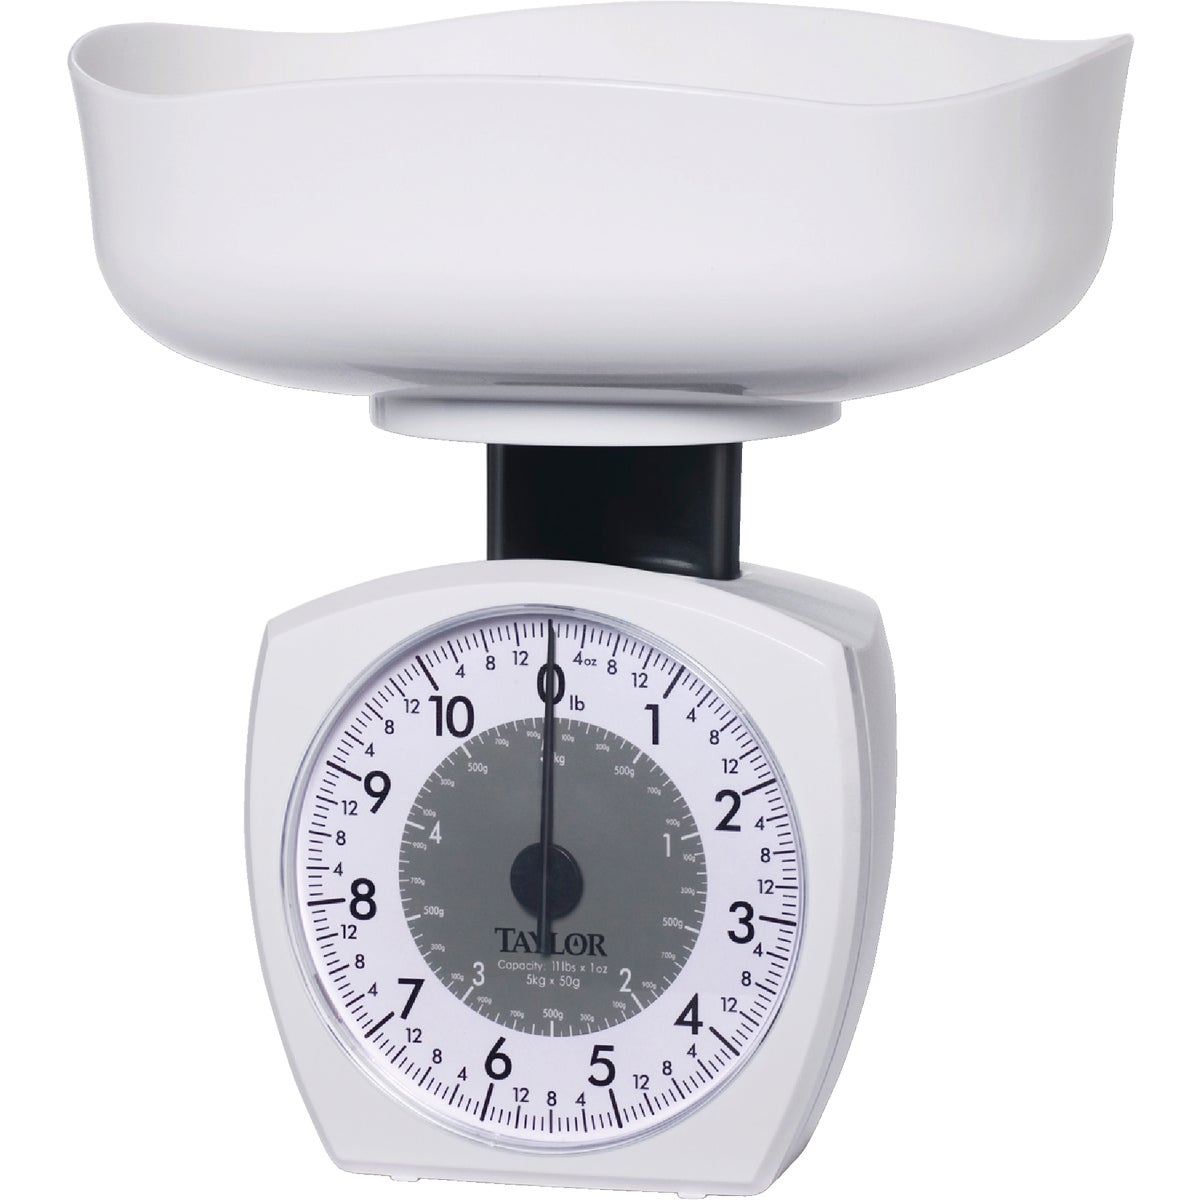 11LB FOOD SCALE - 3701KL by Taylor Precision